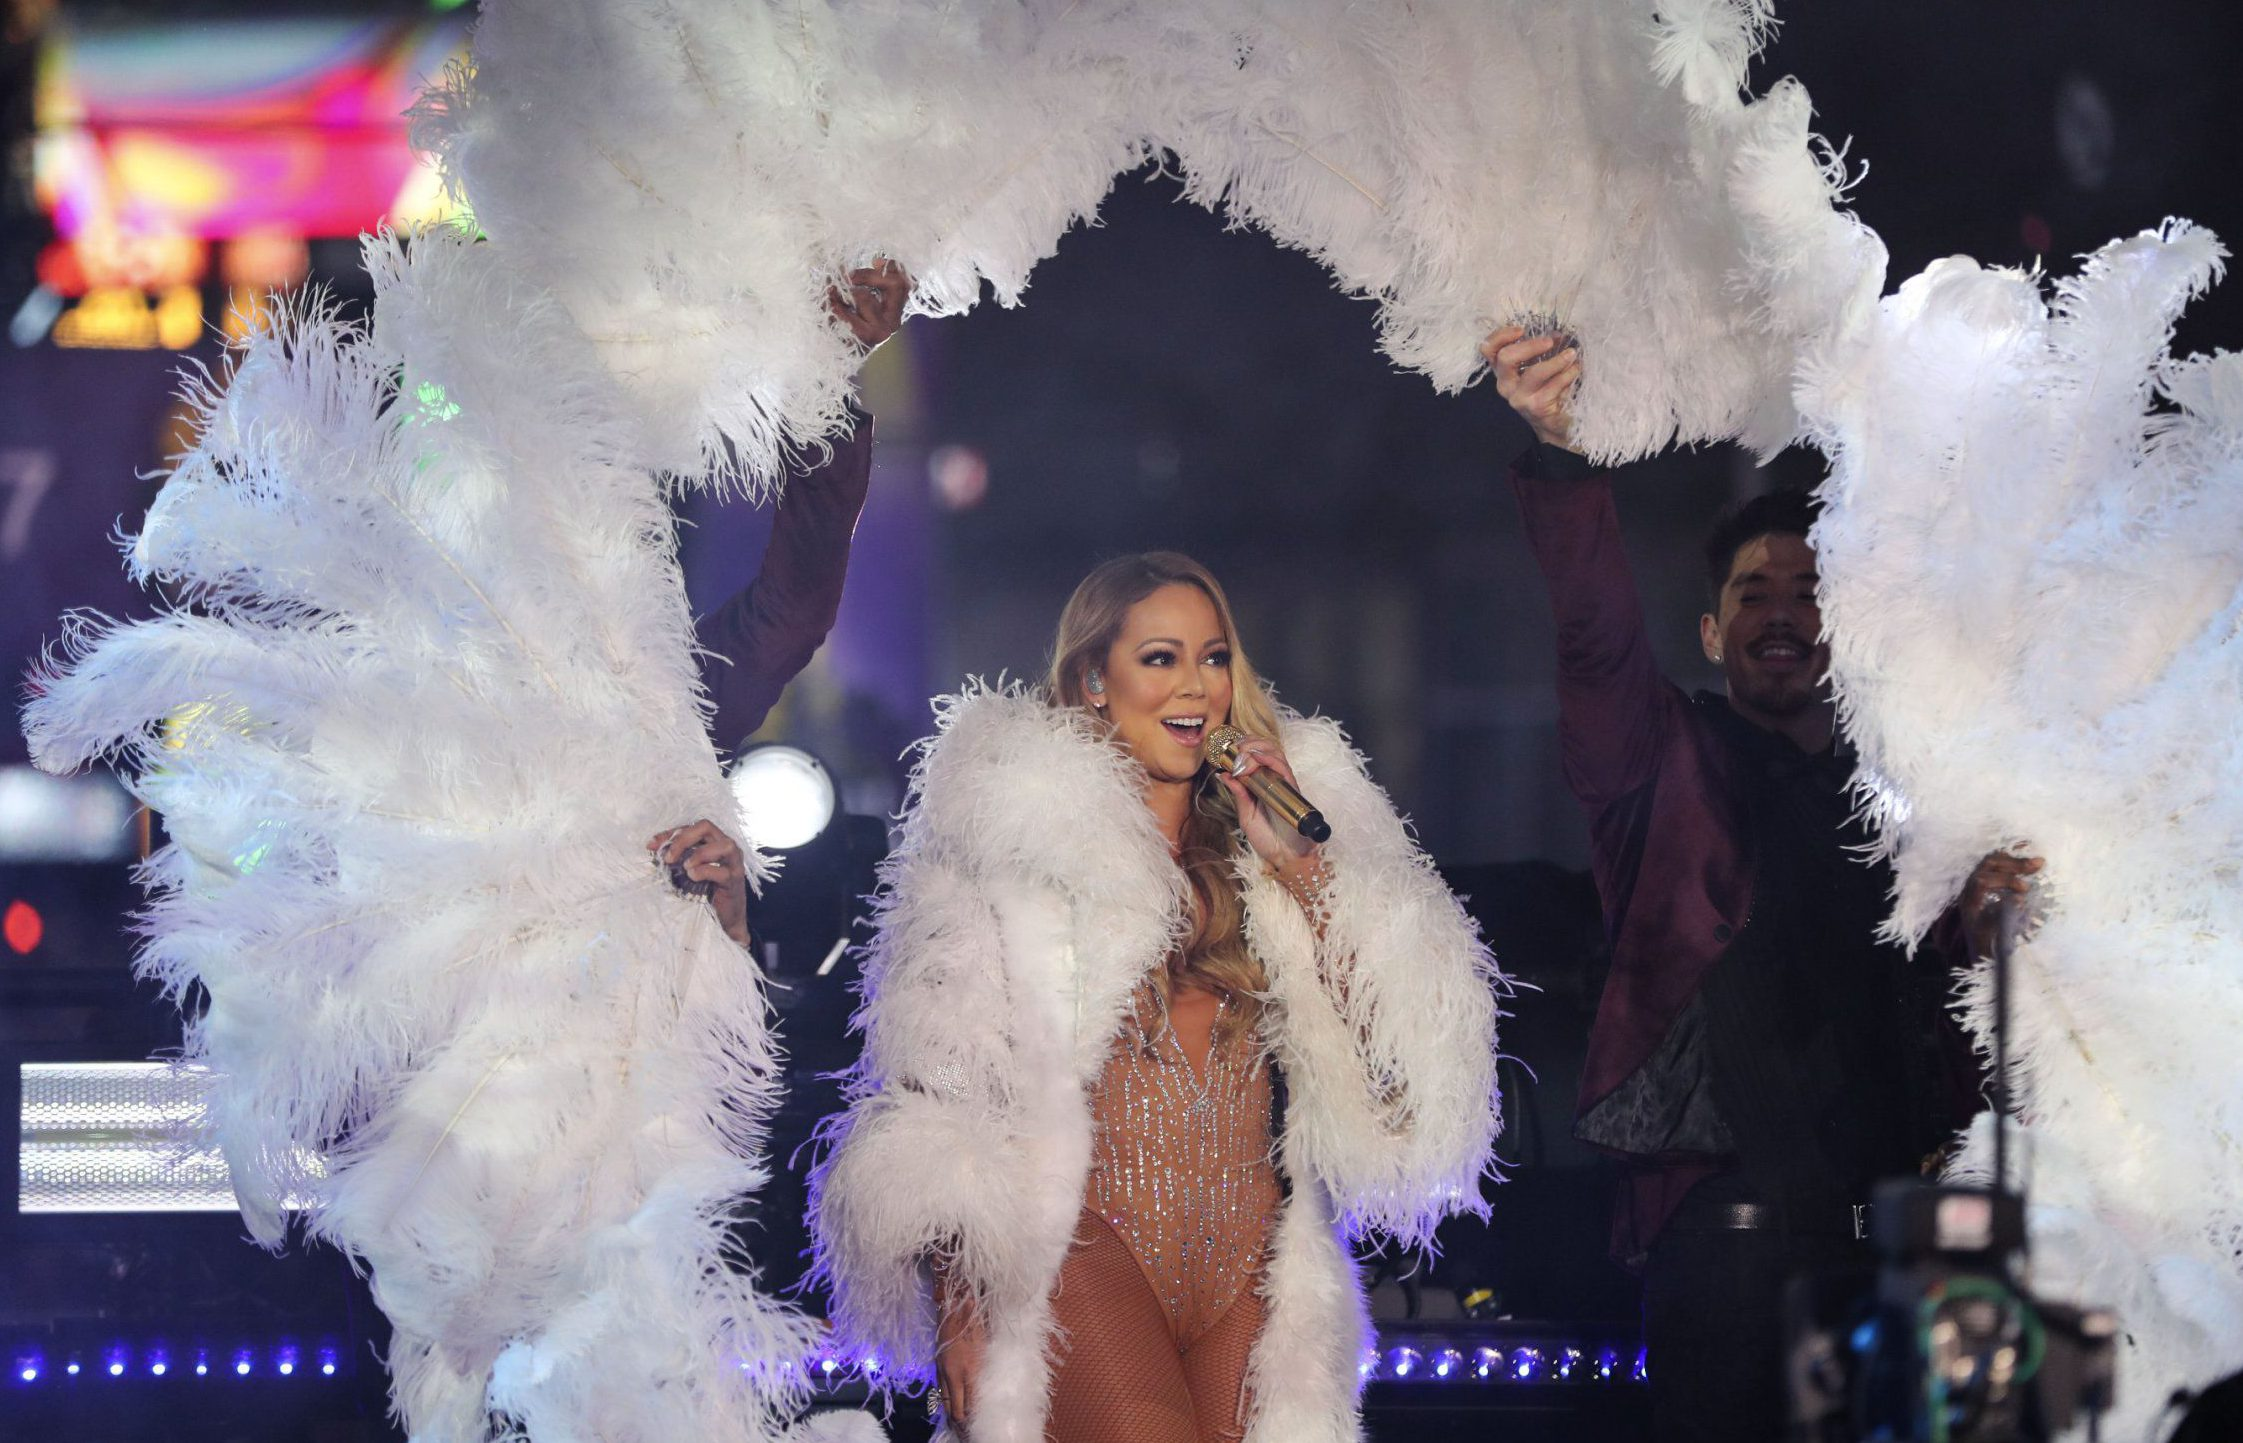 Mandatory Credit: Photo by Xinhua/REX/Shutterstock (7688459m) Singer Mariah Carey performs during the New Year celebration at Times Square in New York New Year celebrations, New York, USA - 31 Dec 2016 The New Year celebration was held at Times Square from the night of Dec. 31, 2016 to Jan. 1, 2017, a well-known traditional event which is expected to draw hundreds of spectators from the Untied States and other parts of the world.